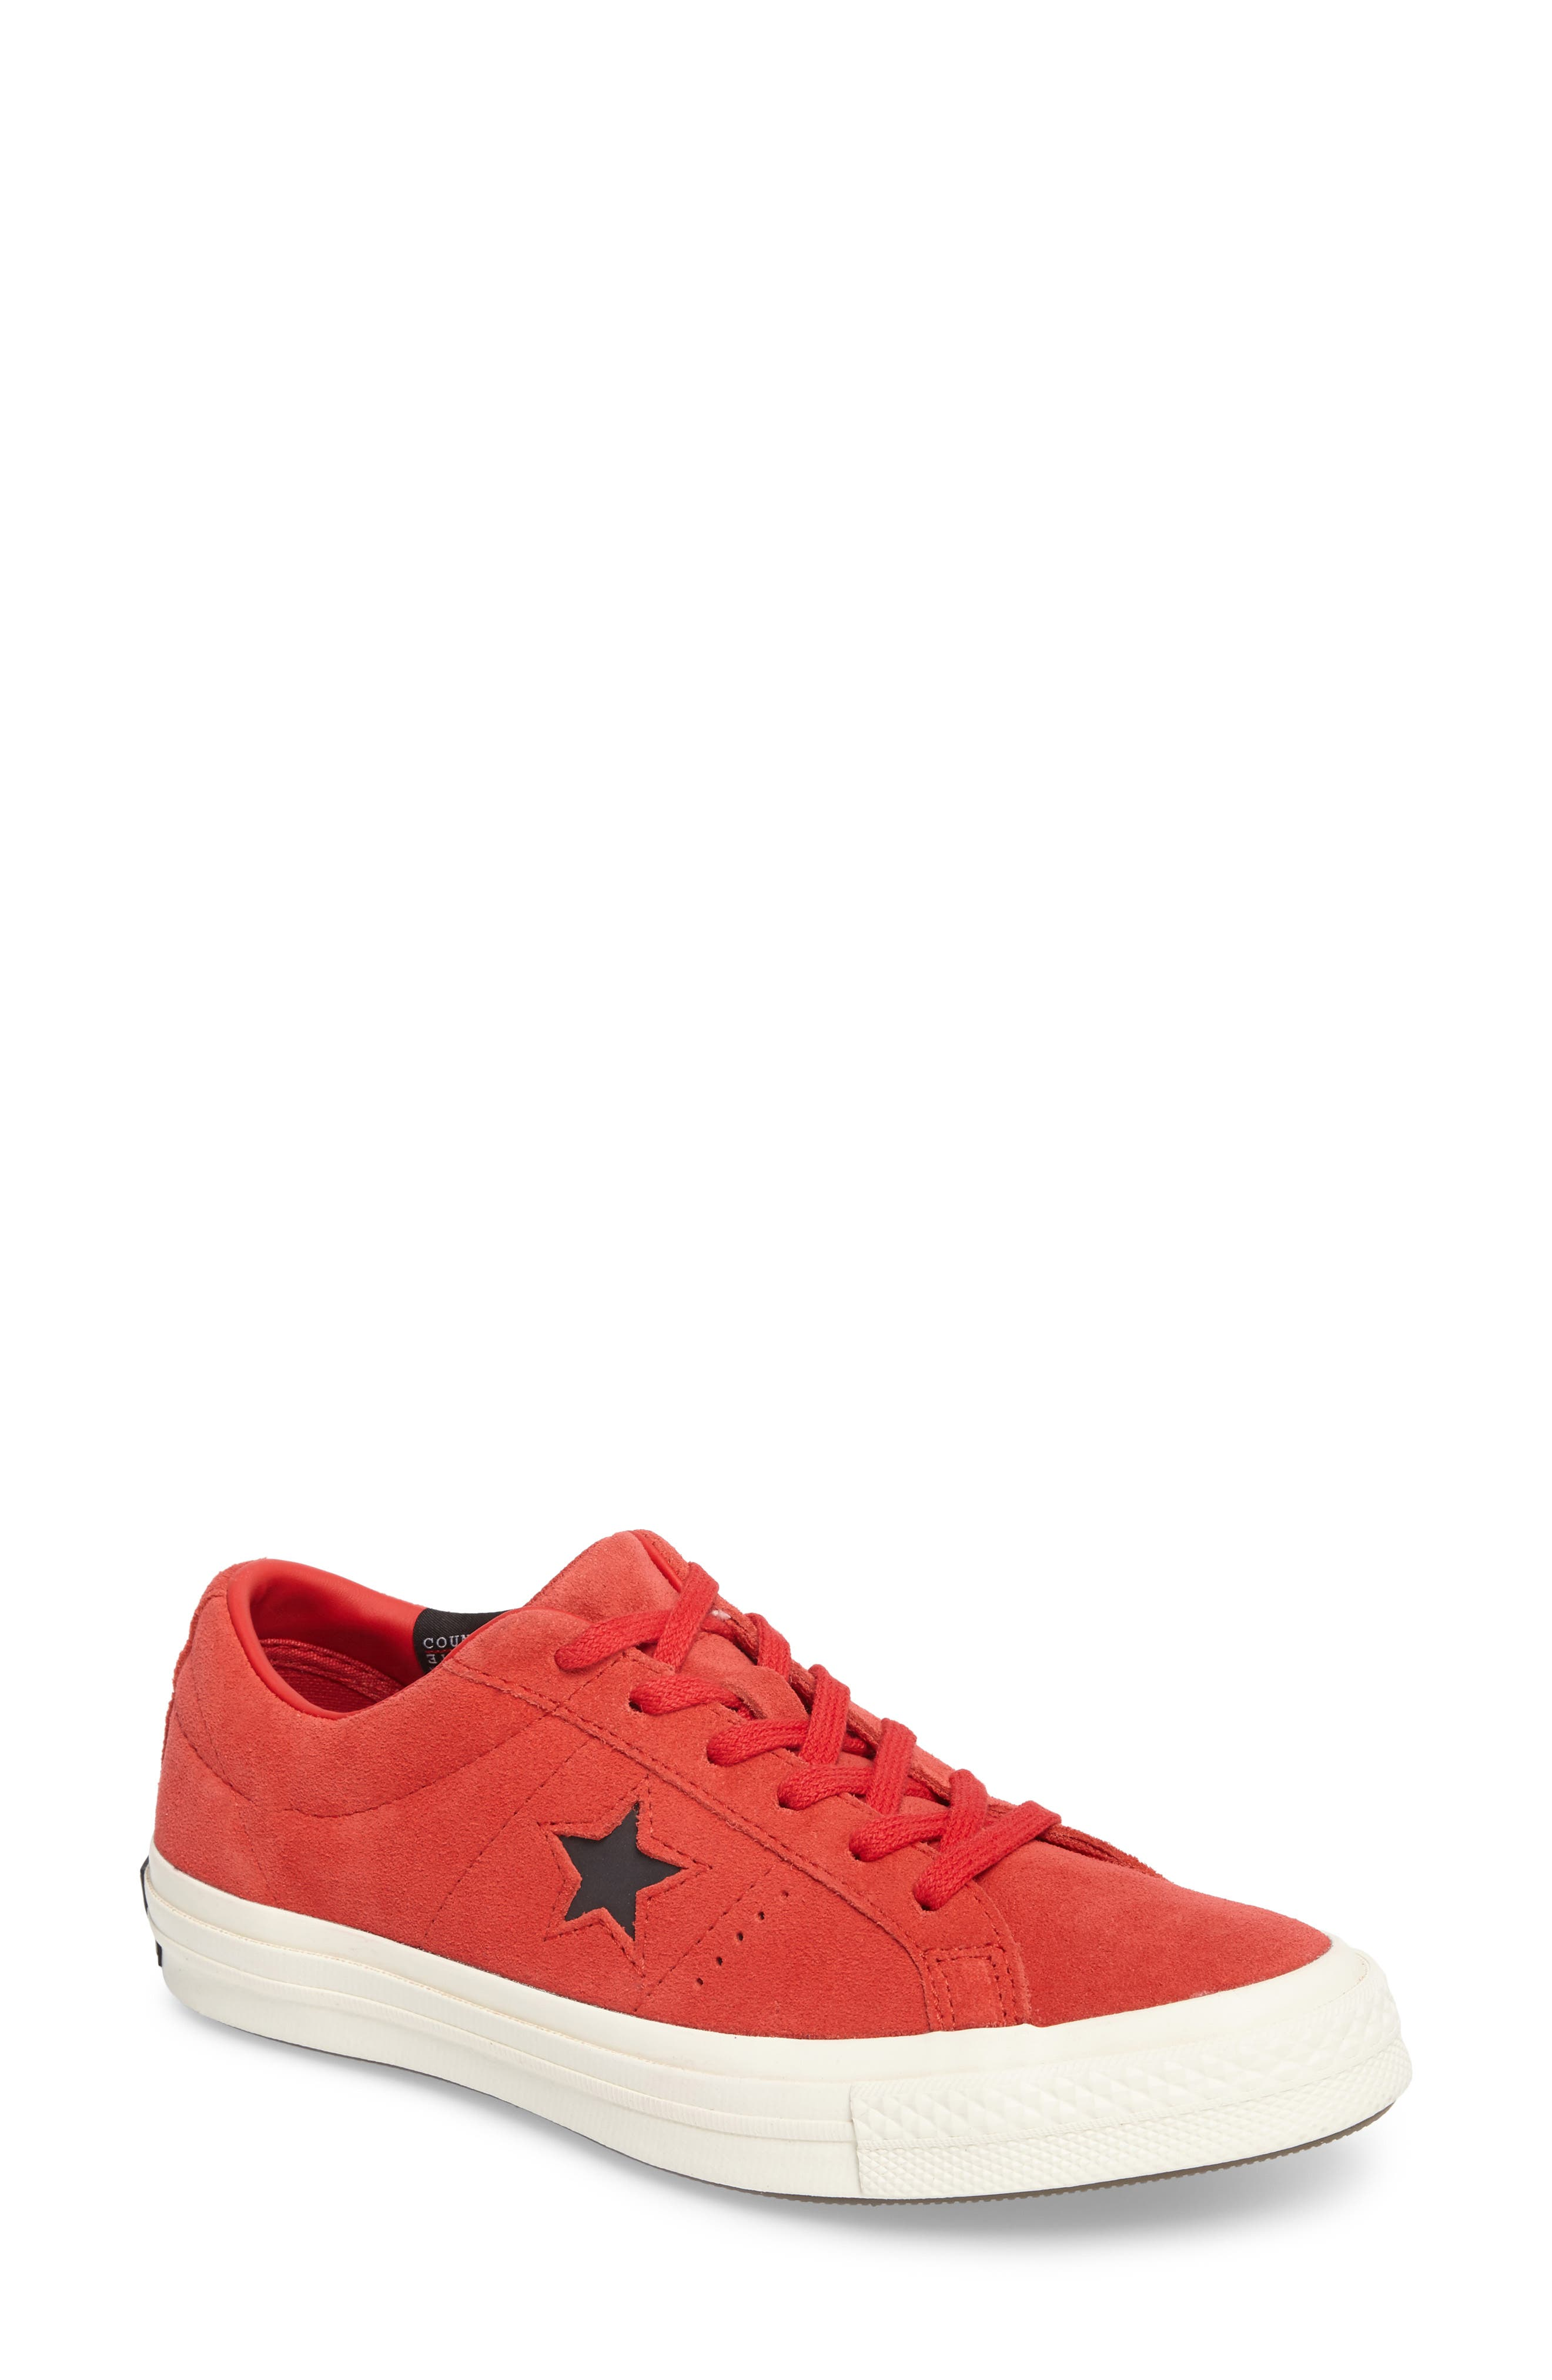 fd0b4a19610d CONVERSE CHUCK TAYLOR ALL STAR ONE STAR LOW-TOP SNEAKER